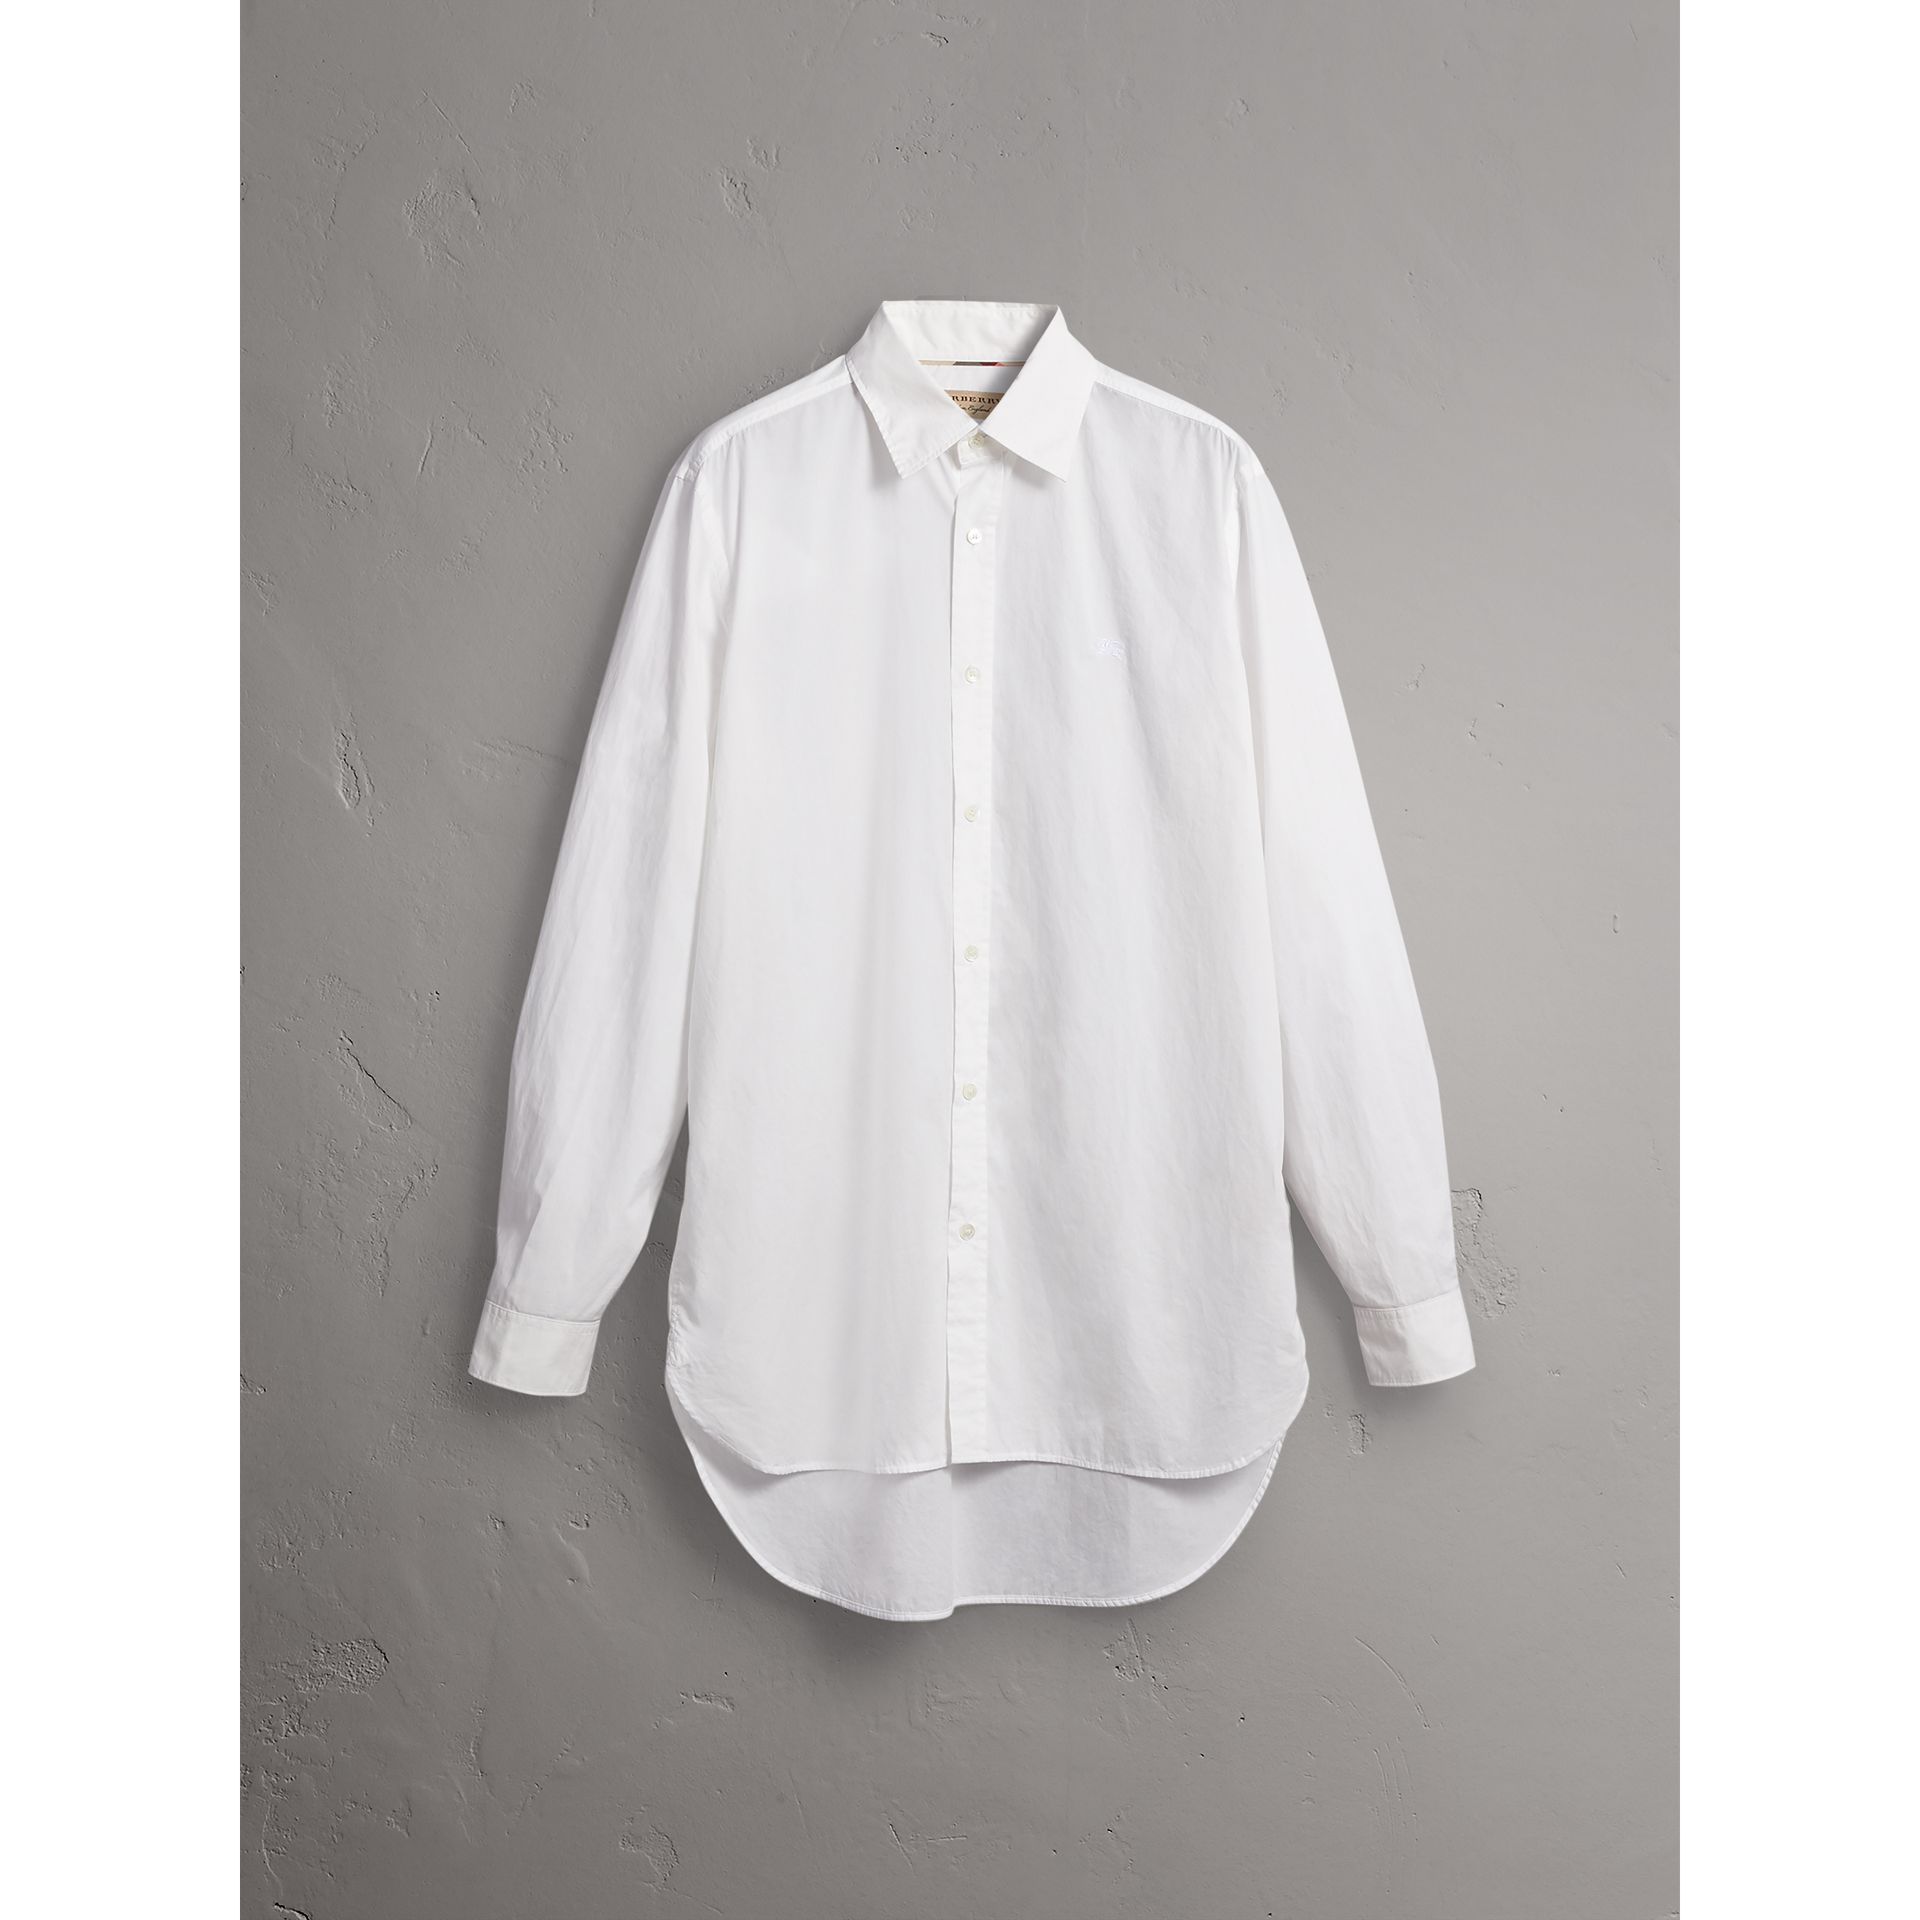 Japanese Cotton Poplin Shirt in White - Men | Burberry Canada - gallery image 4